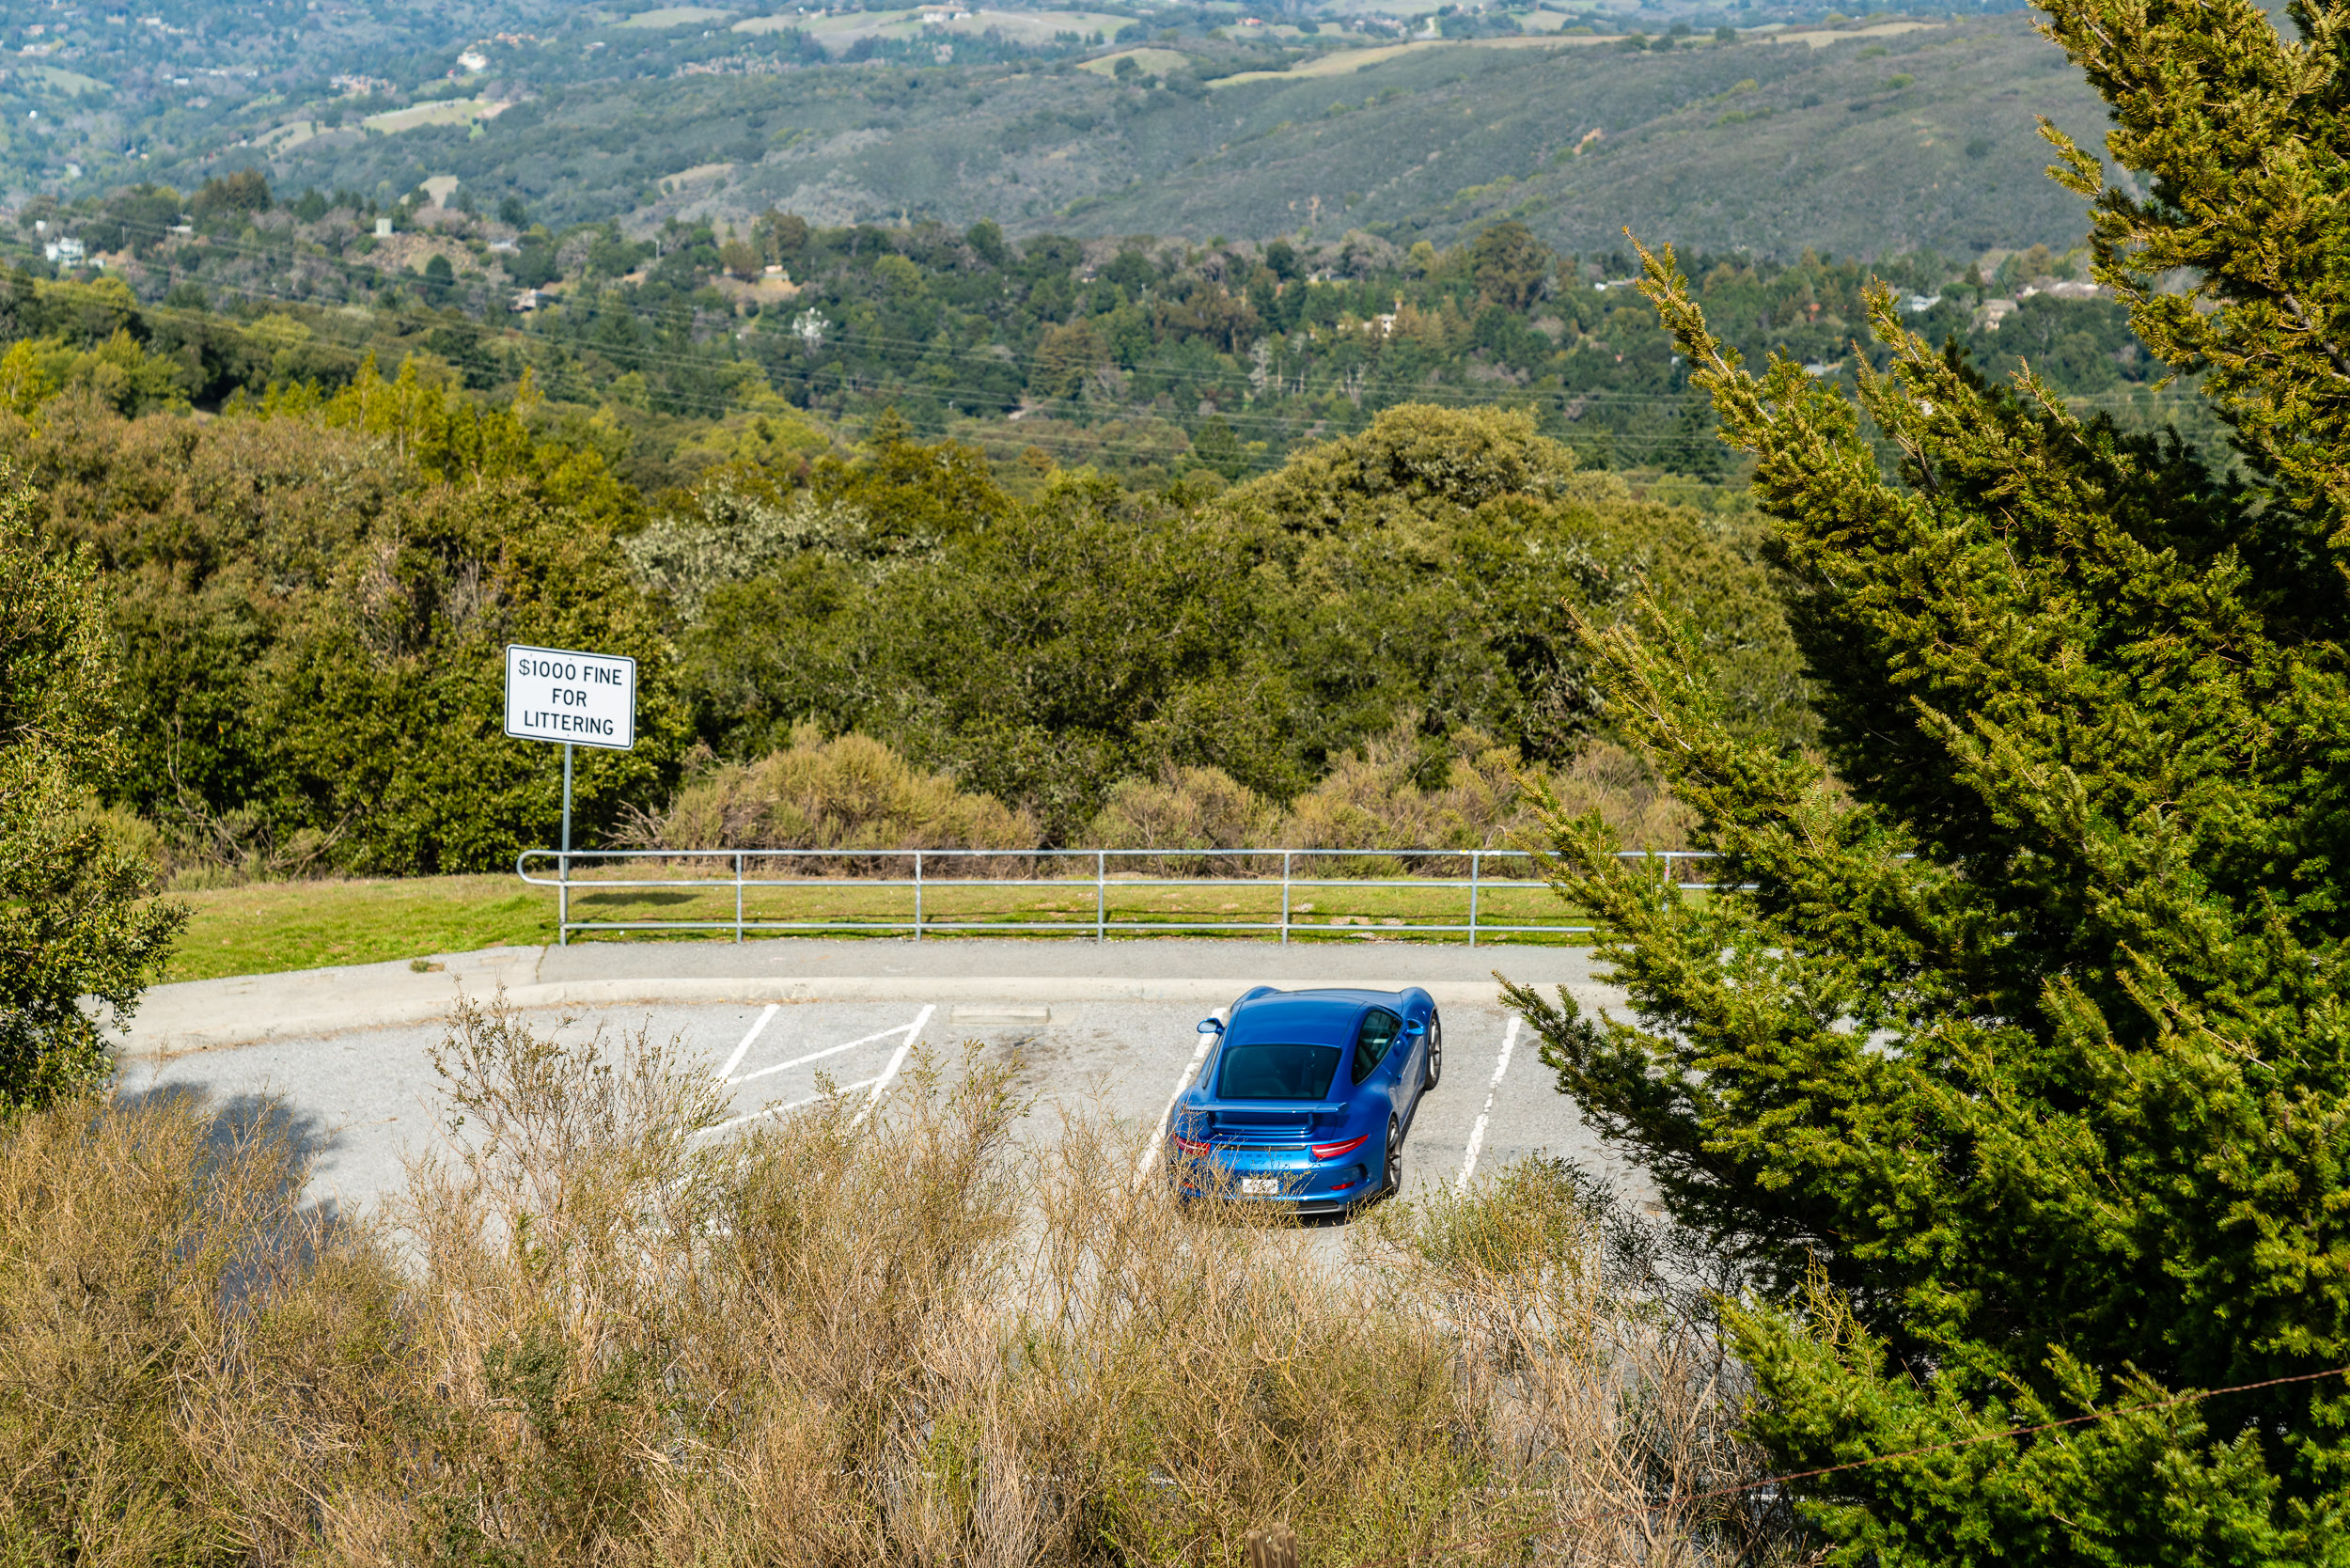 gt3-highway-35-vista-point-above.jpg